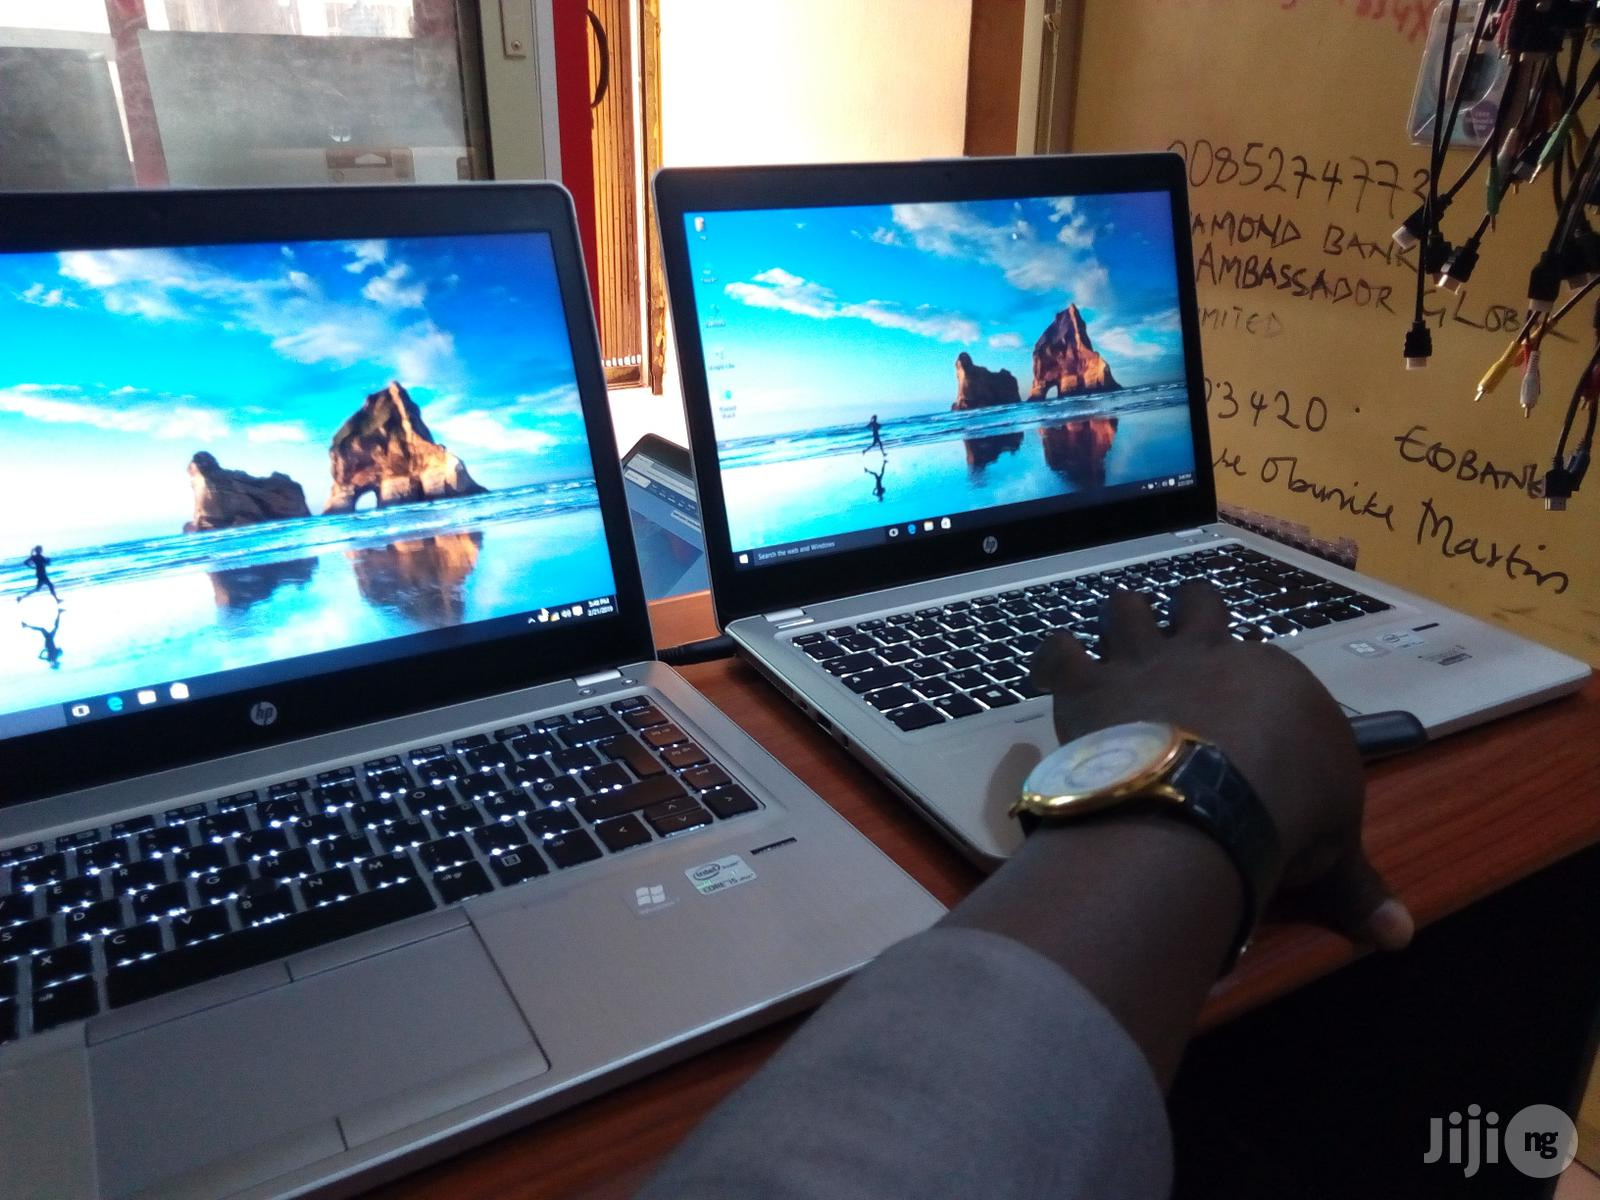 Laptop HP EliteBook Folio 9470M 4GB Intel Core I5 HDD 500GB   Laptops & Computers for sale in Wuse 2, Abuja (FCT) State, Nigeria